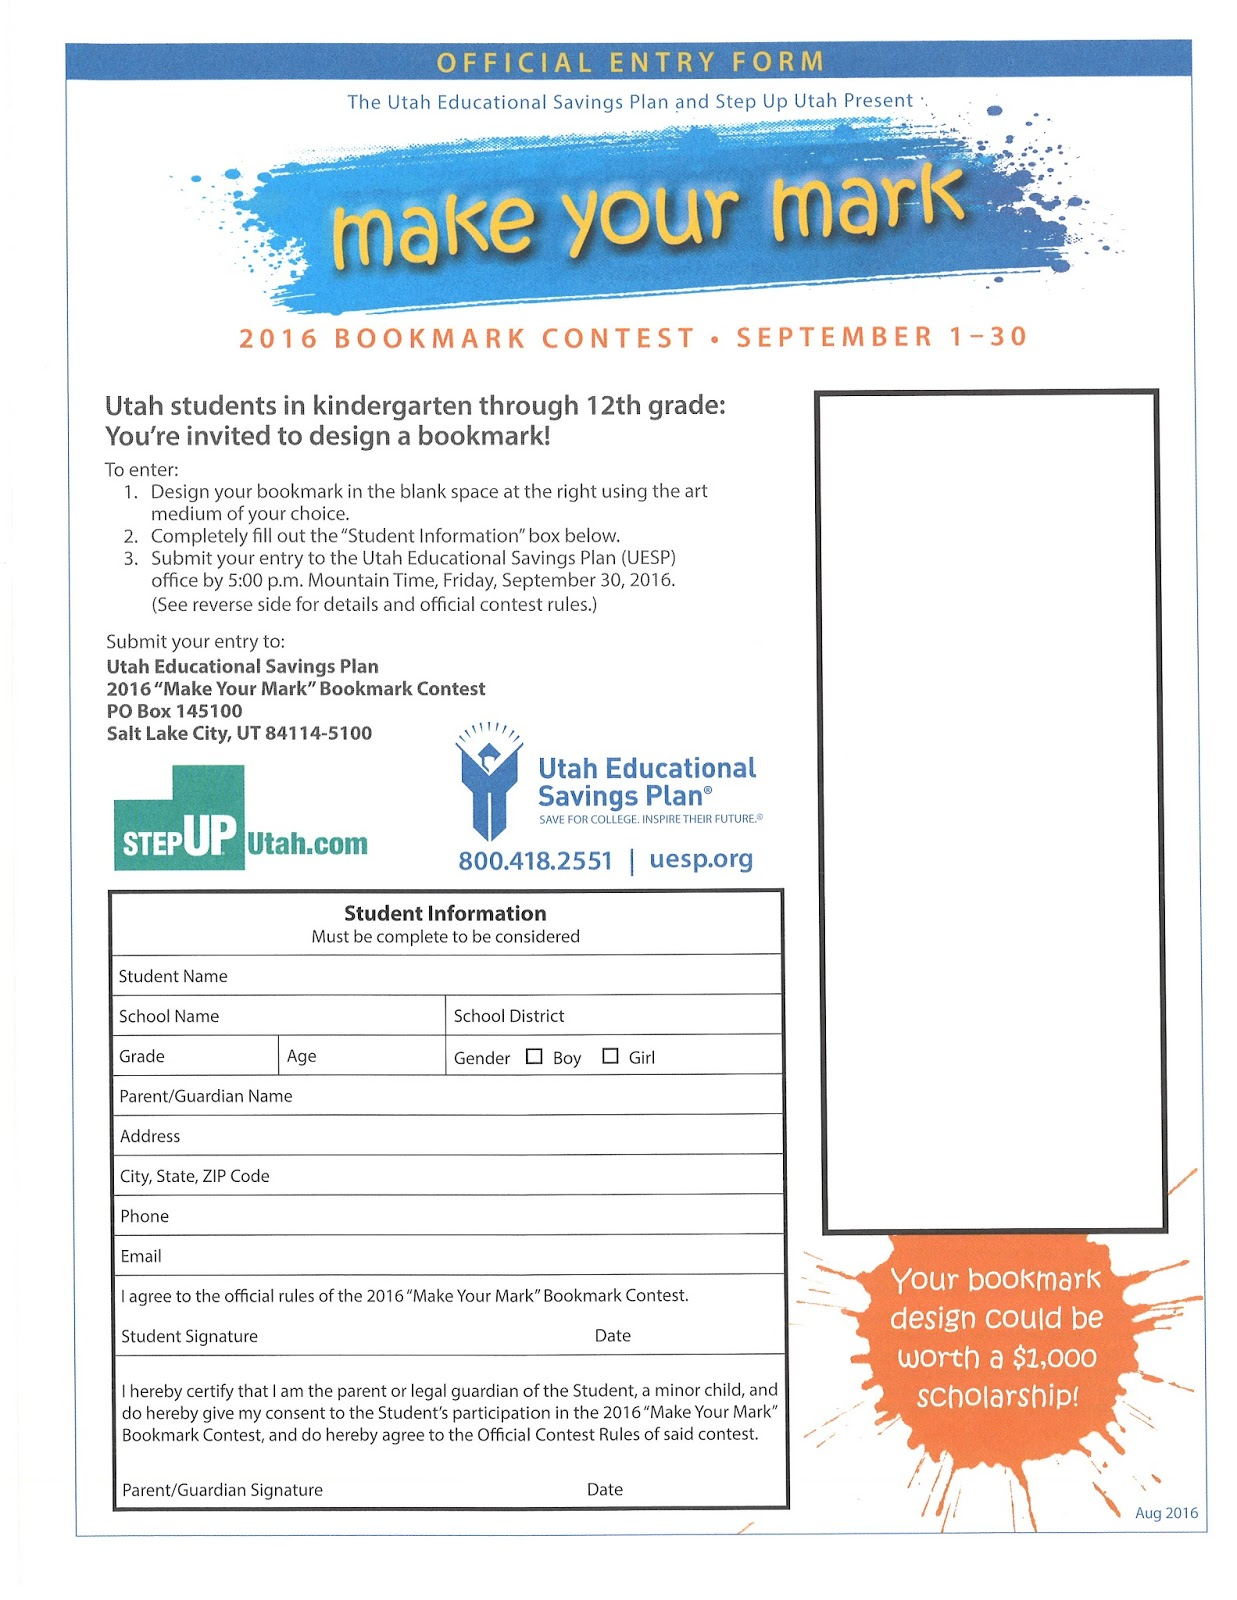 McKinley Elementary Cougars: Design A Bookmark Contest